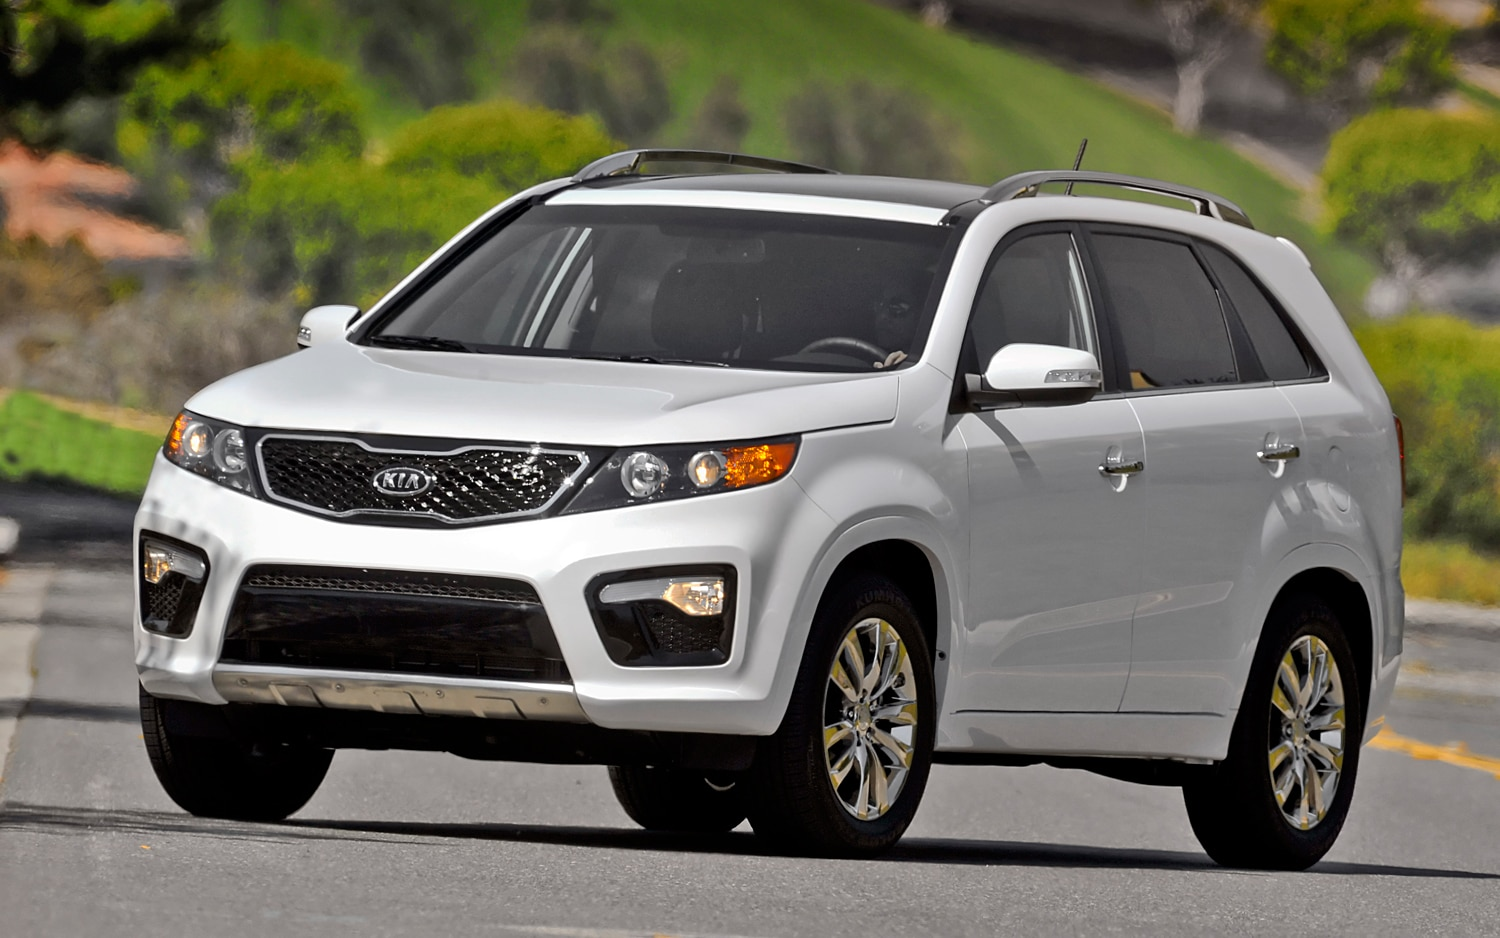 2012 Kia Sorento Front Left View 2